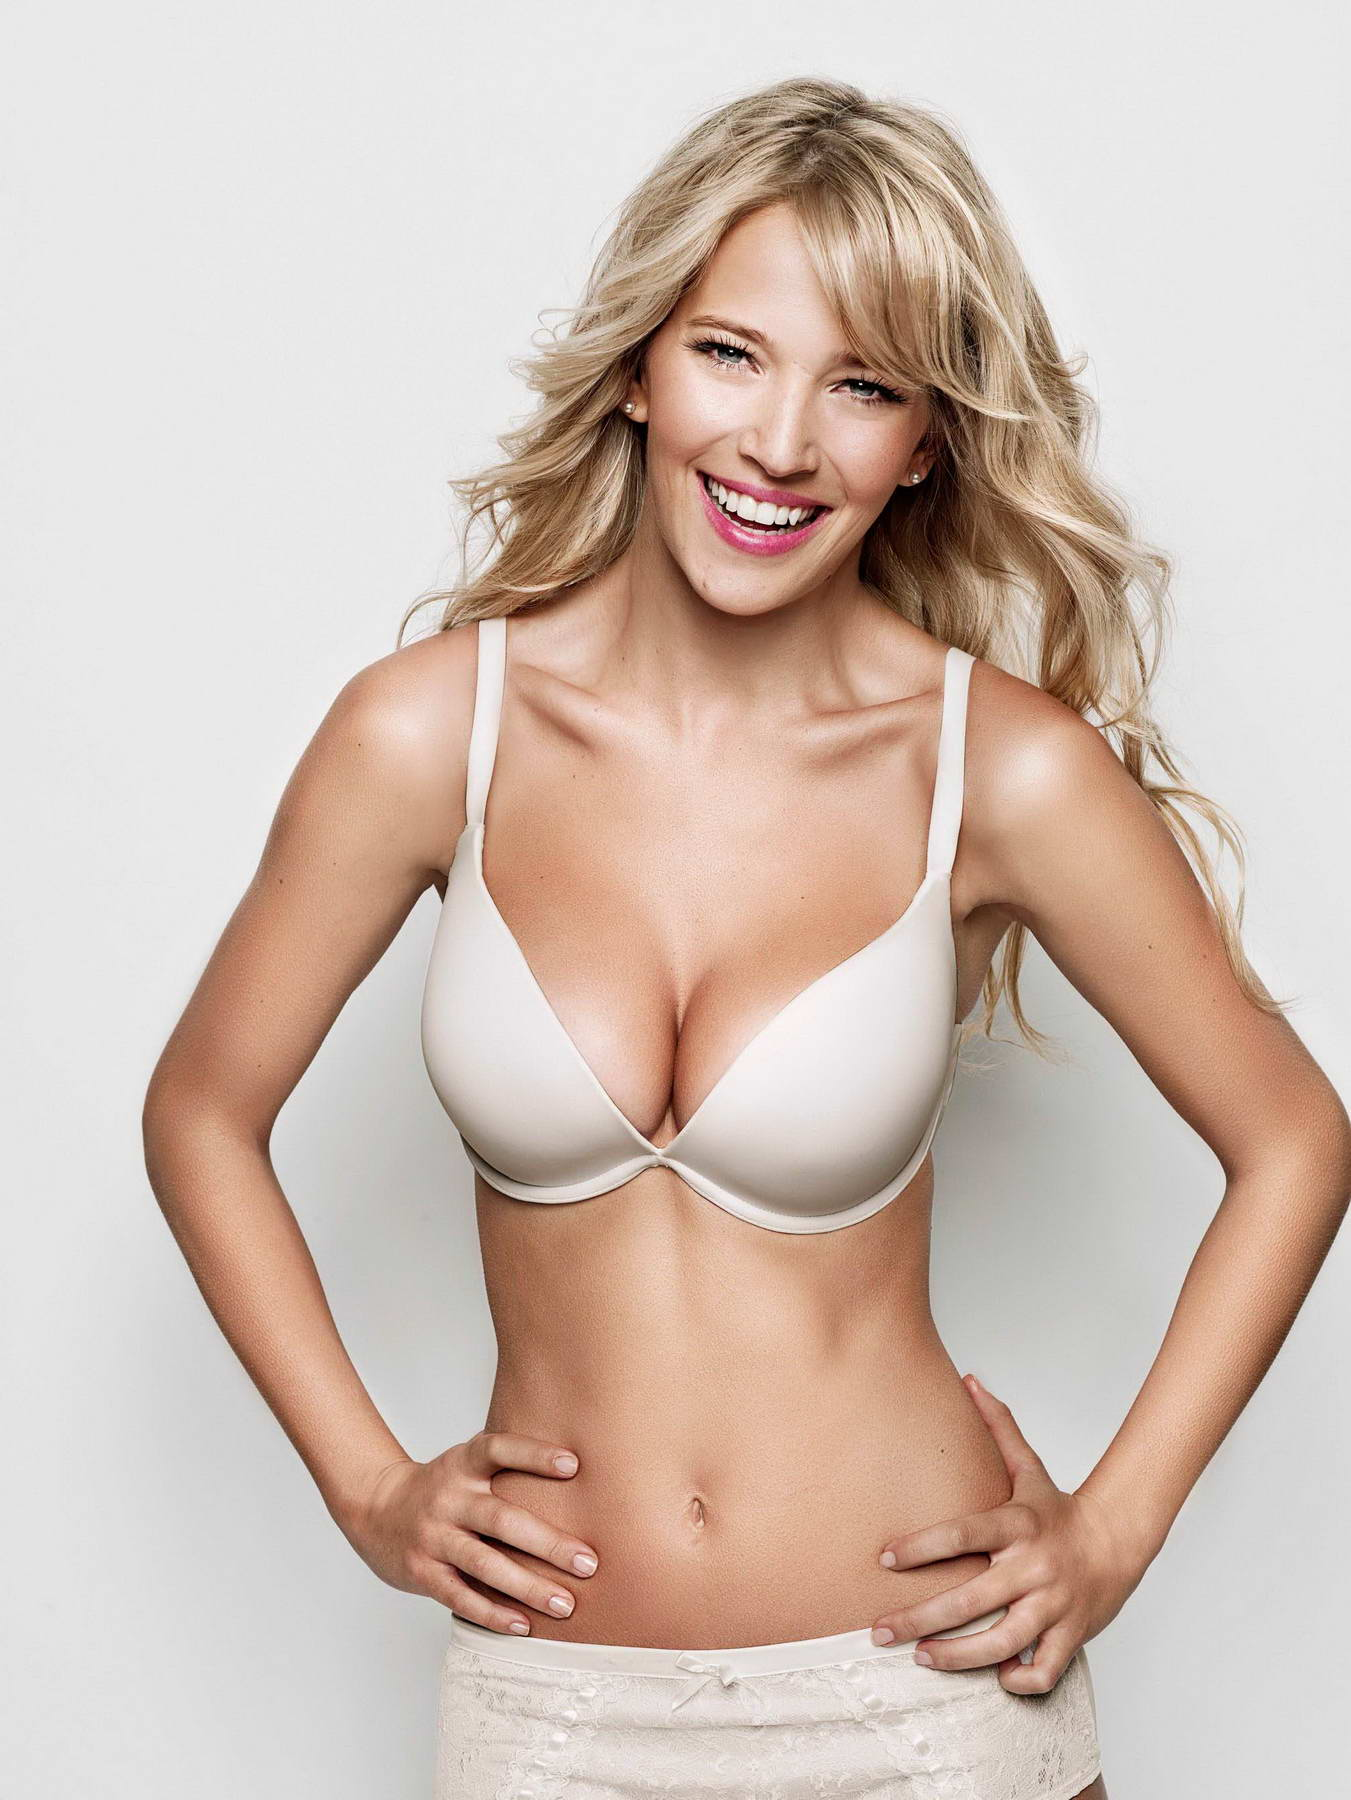 Luisana Lopilato Photoshoot for Ultimo Lingerie 12 Photograph by: Submitted photo, PNG. E mail this Gallery ...